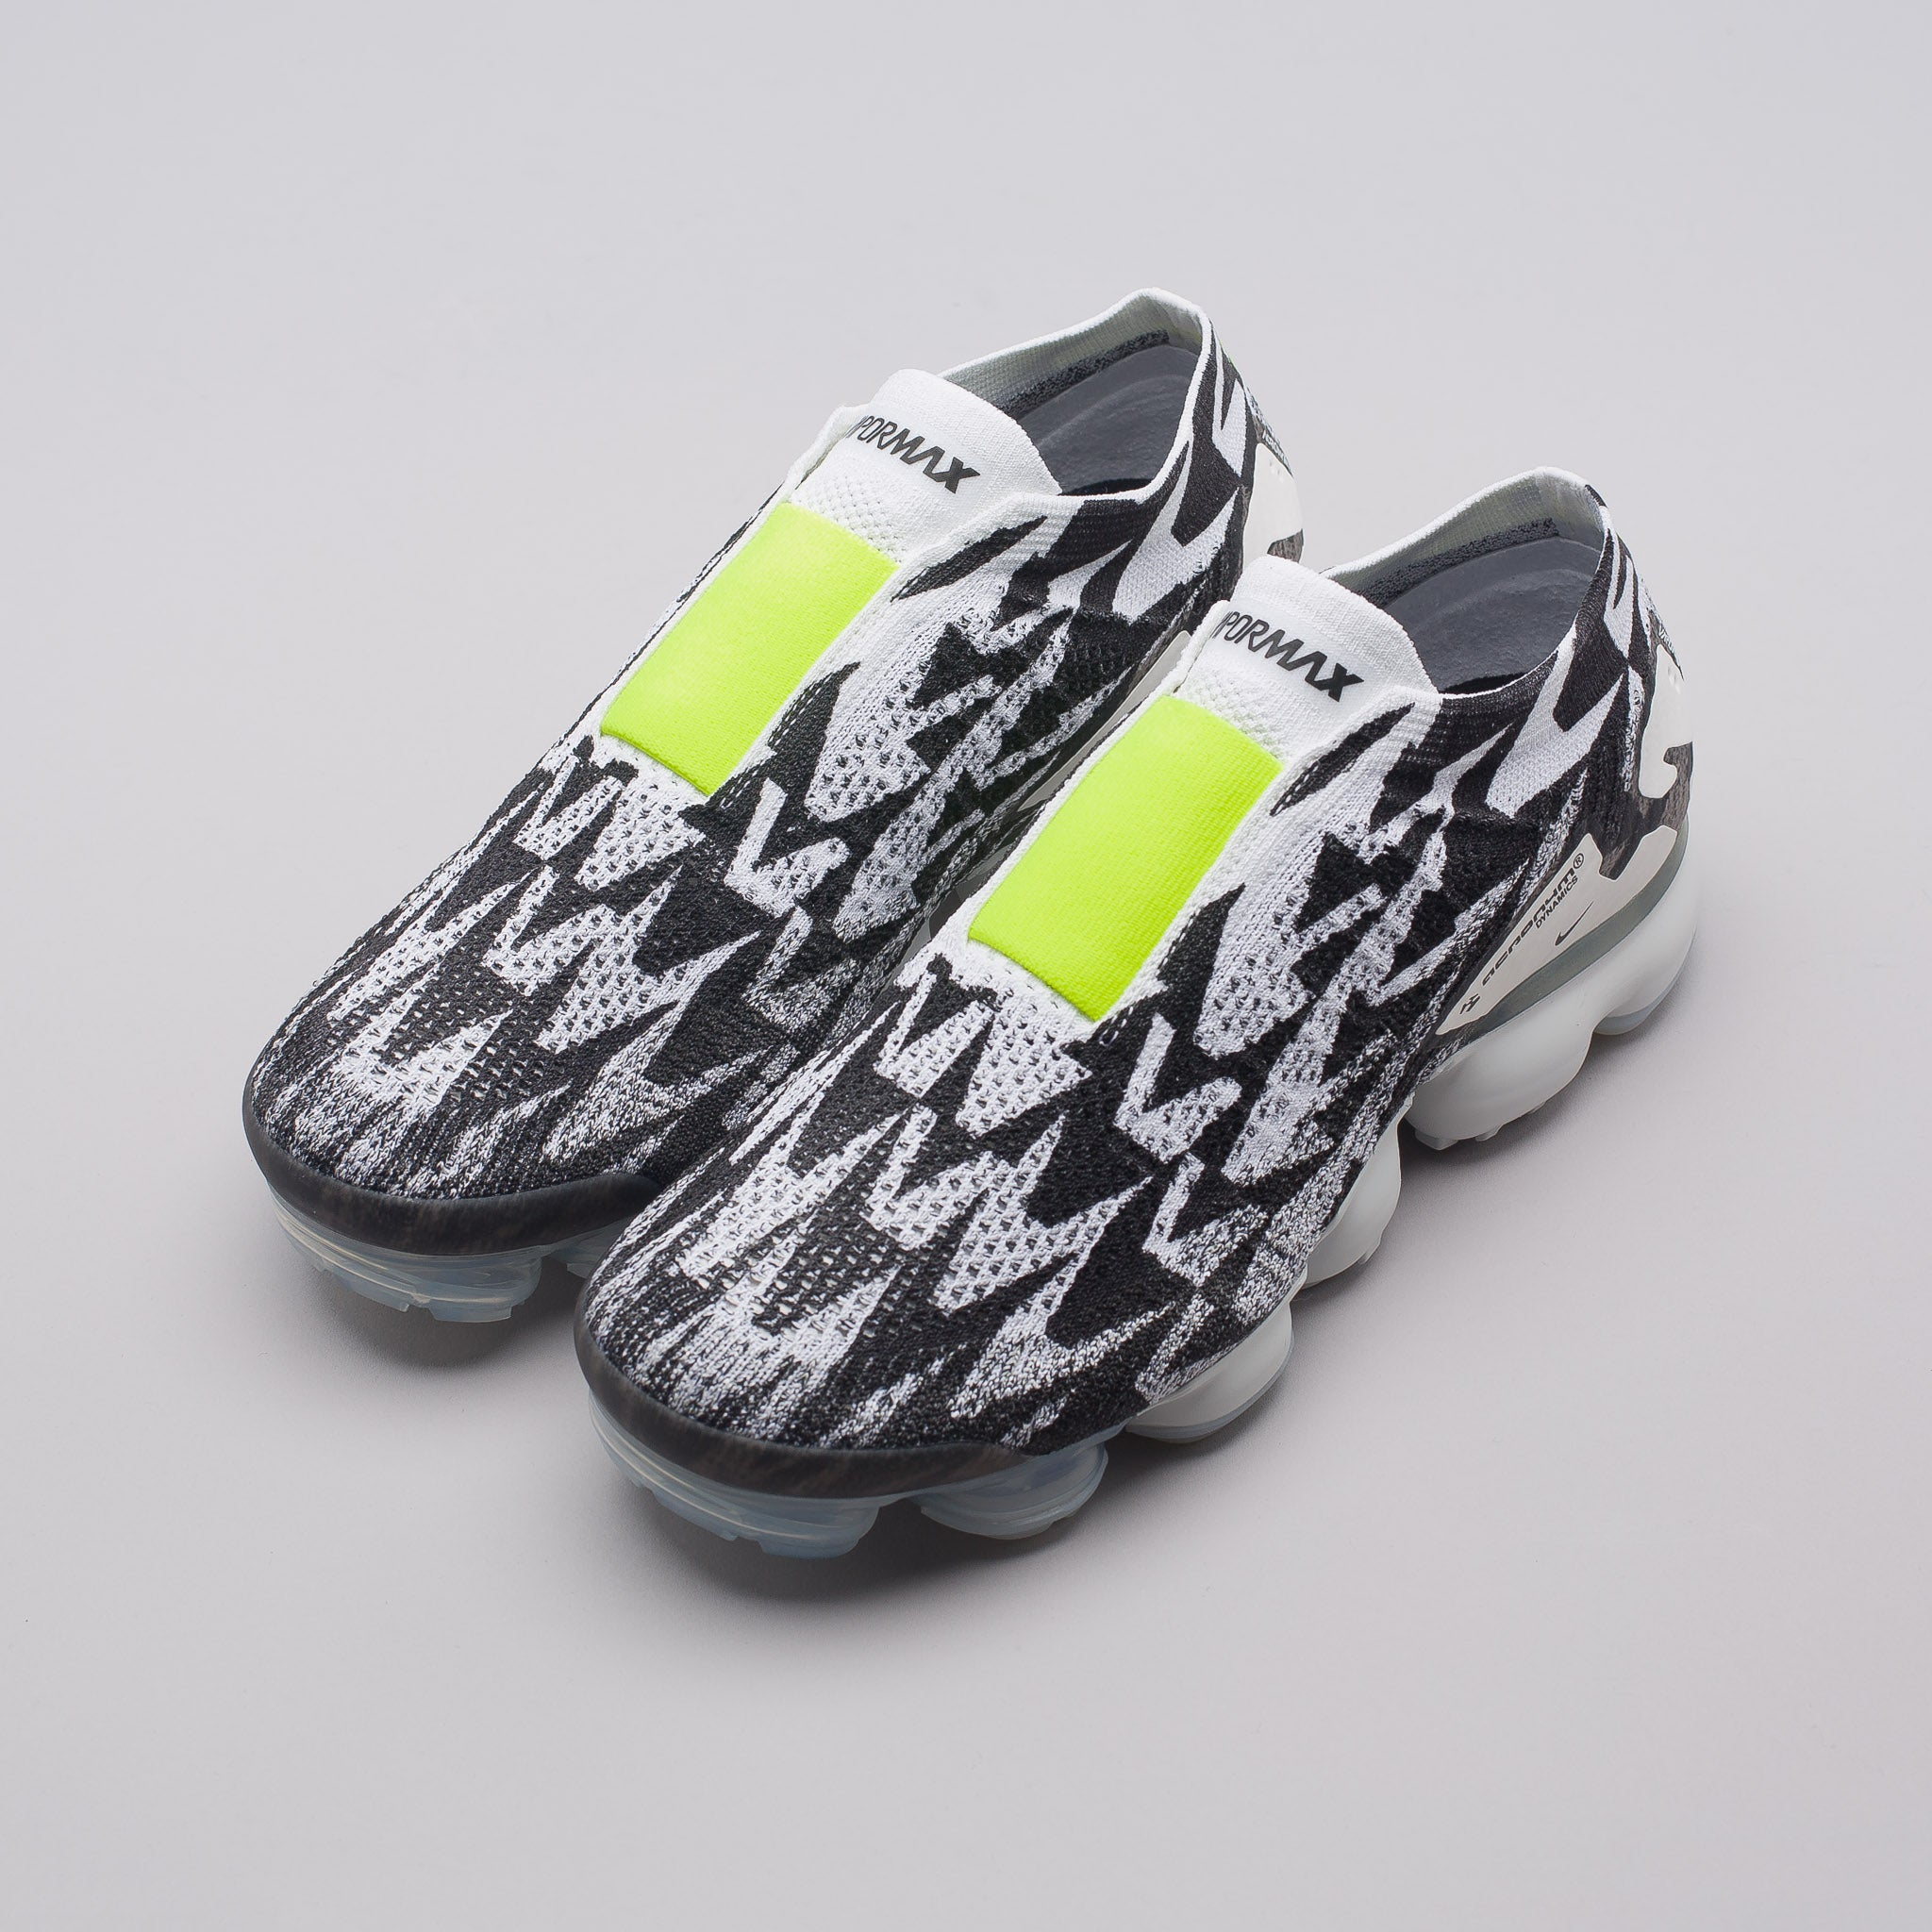 b24db78bbe official images acronym x nike air vapormax moc 2 black volt; x acronym air  vapormax fk moc 2 in light bone volt green